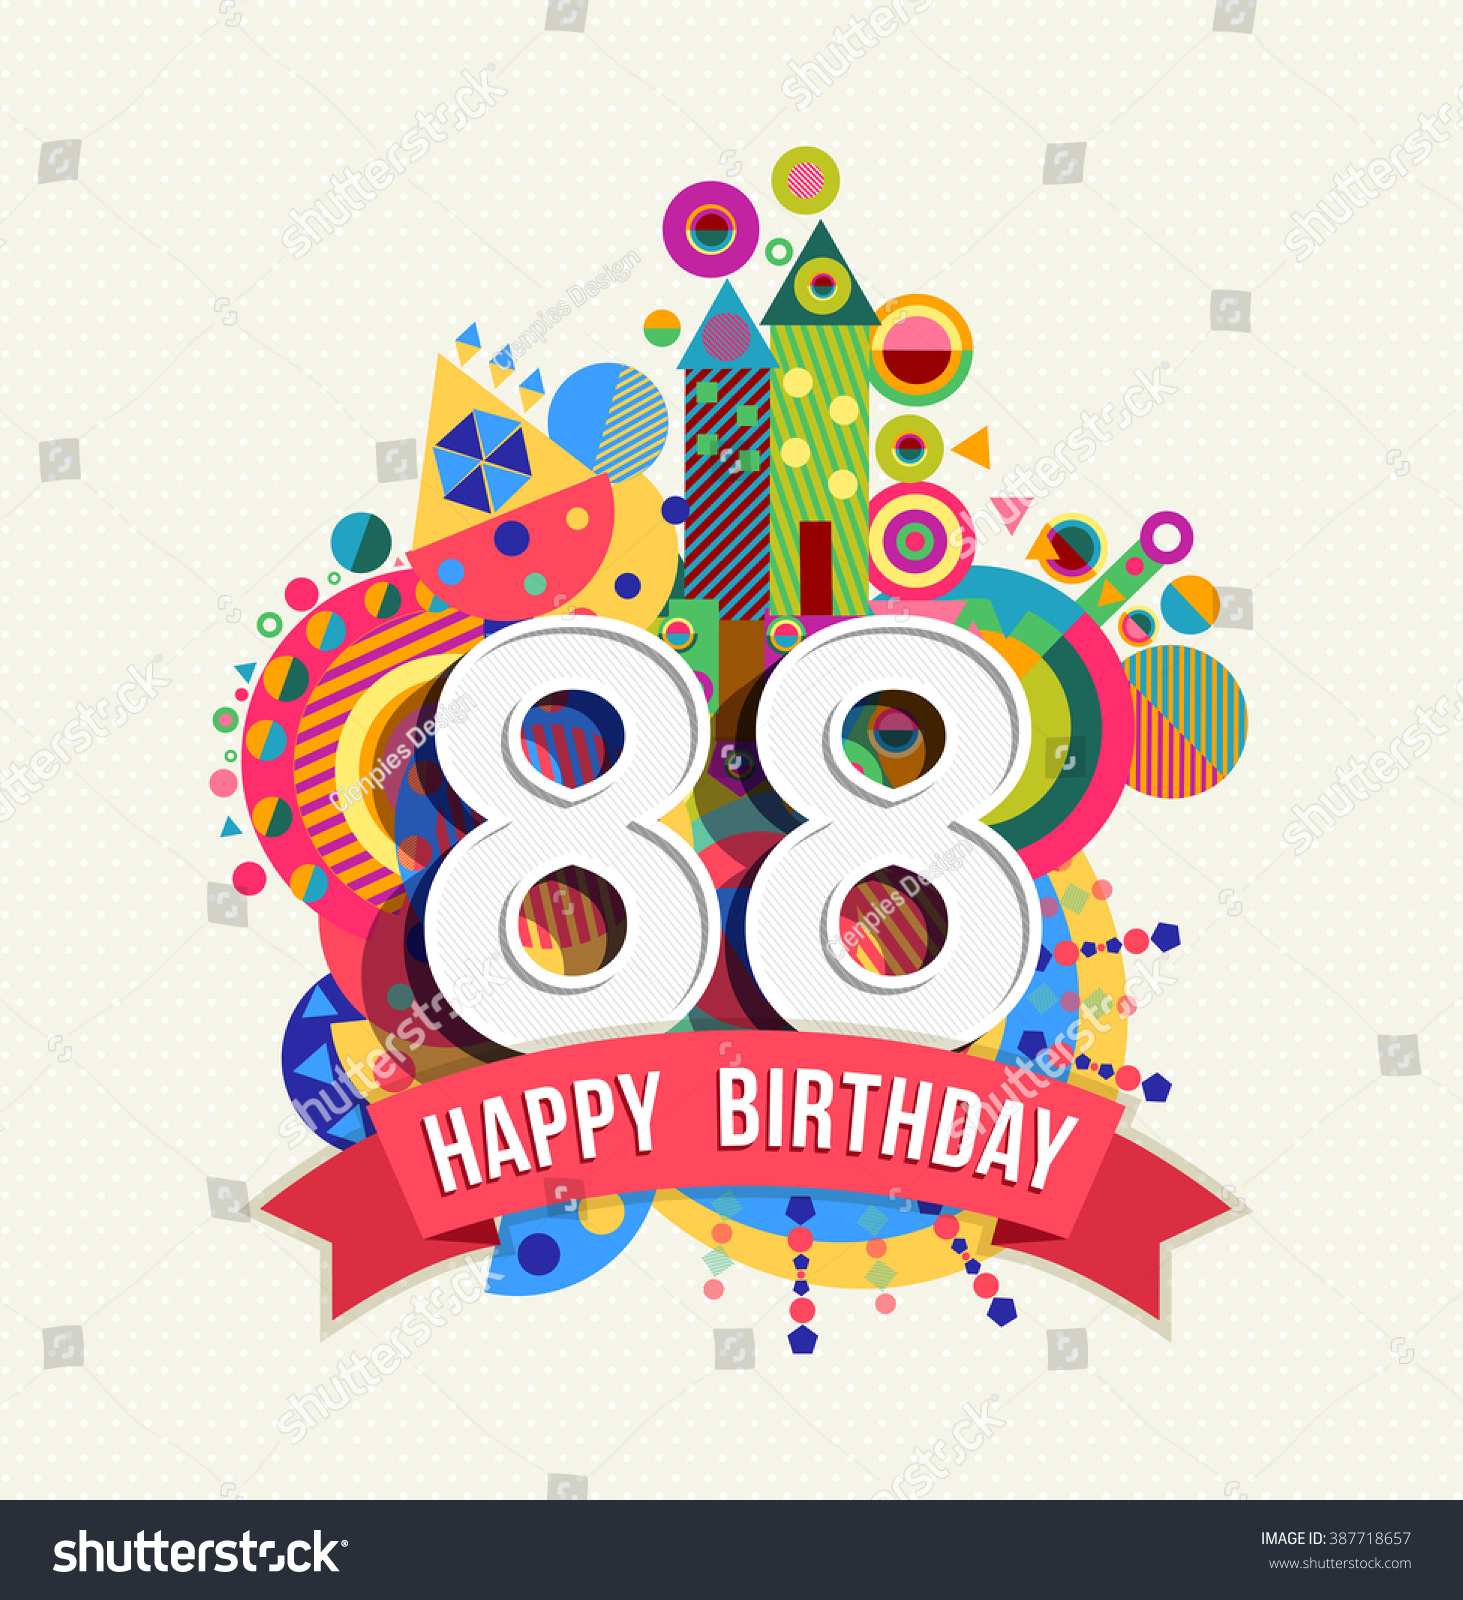 Happy Birthday Eighty Eight 88 Year Fun Celebration Anniversary Greeting Card With Number Text